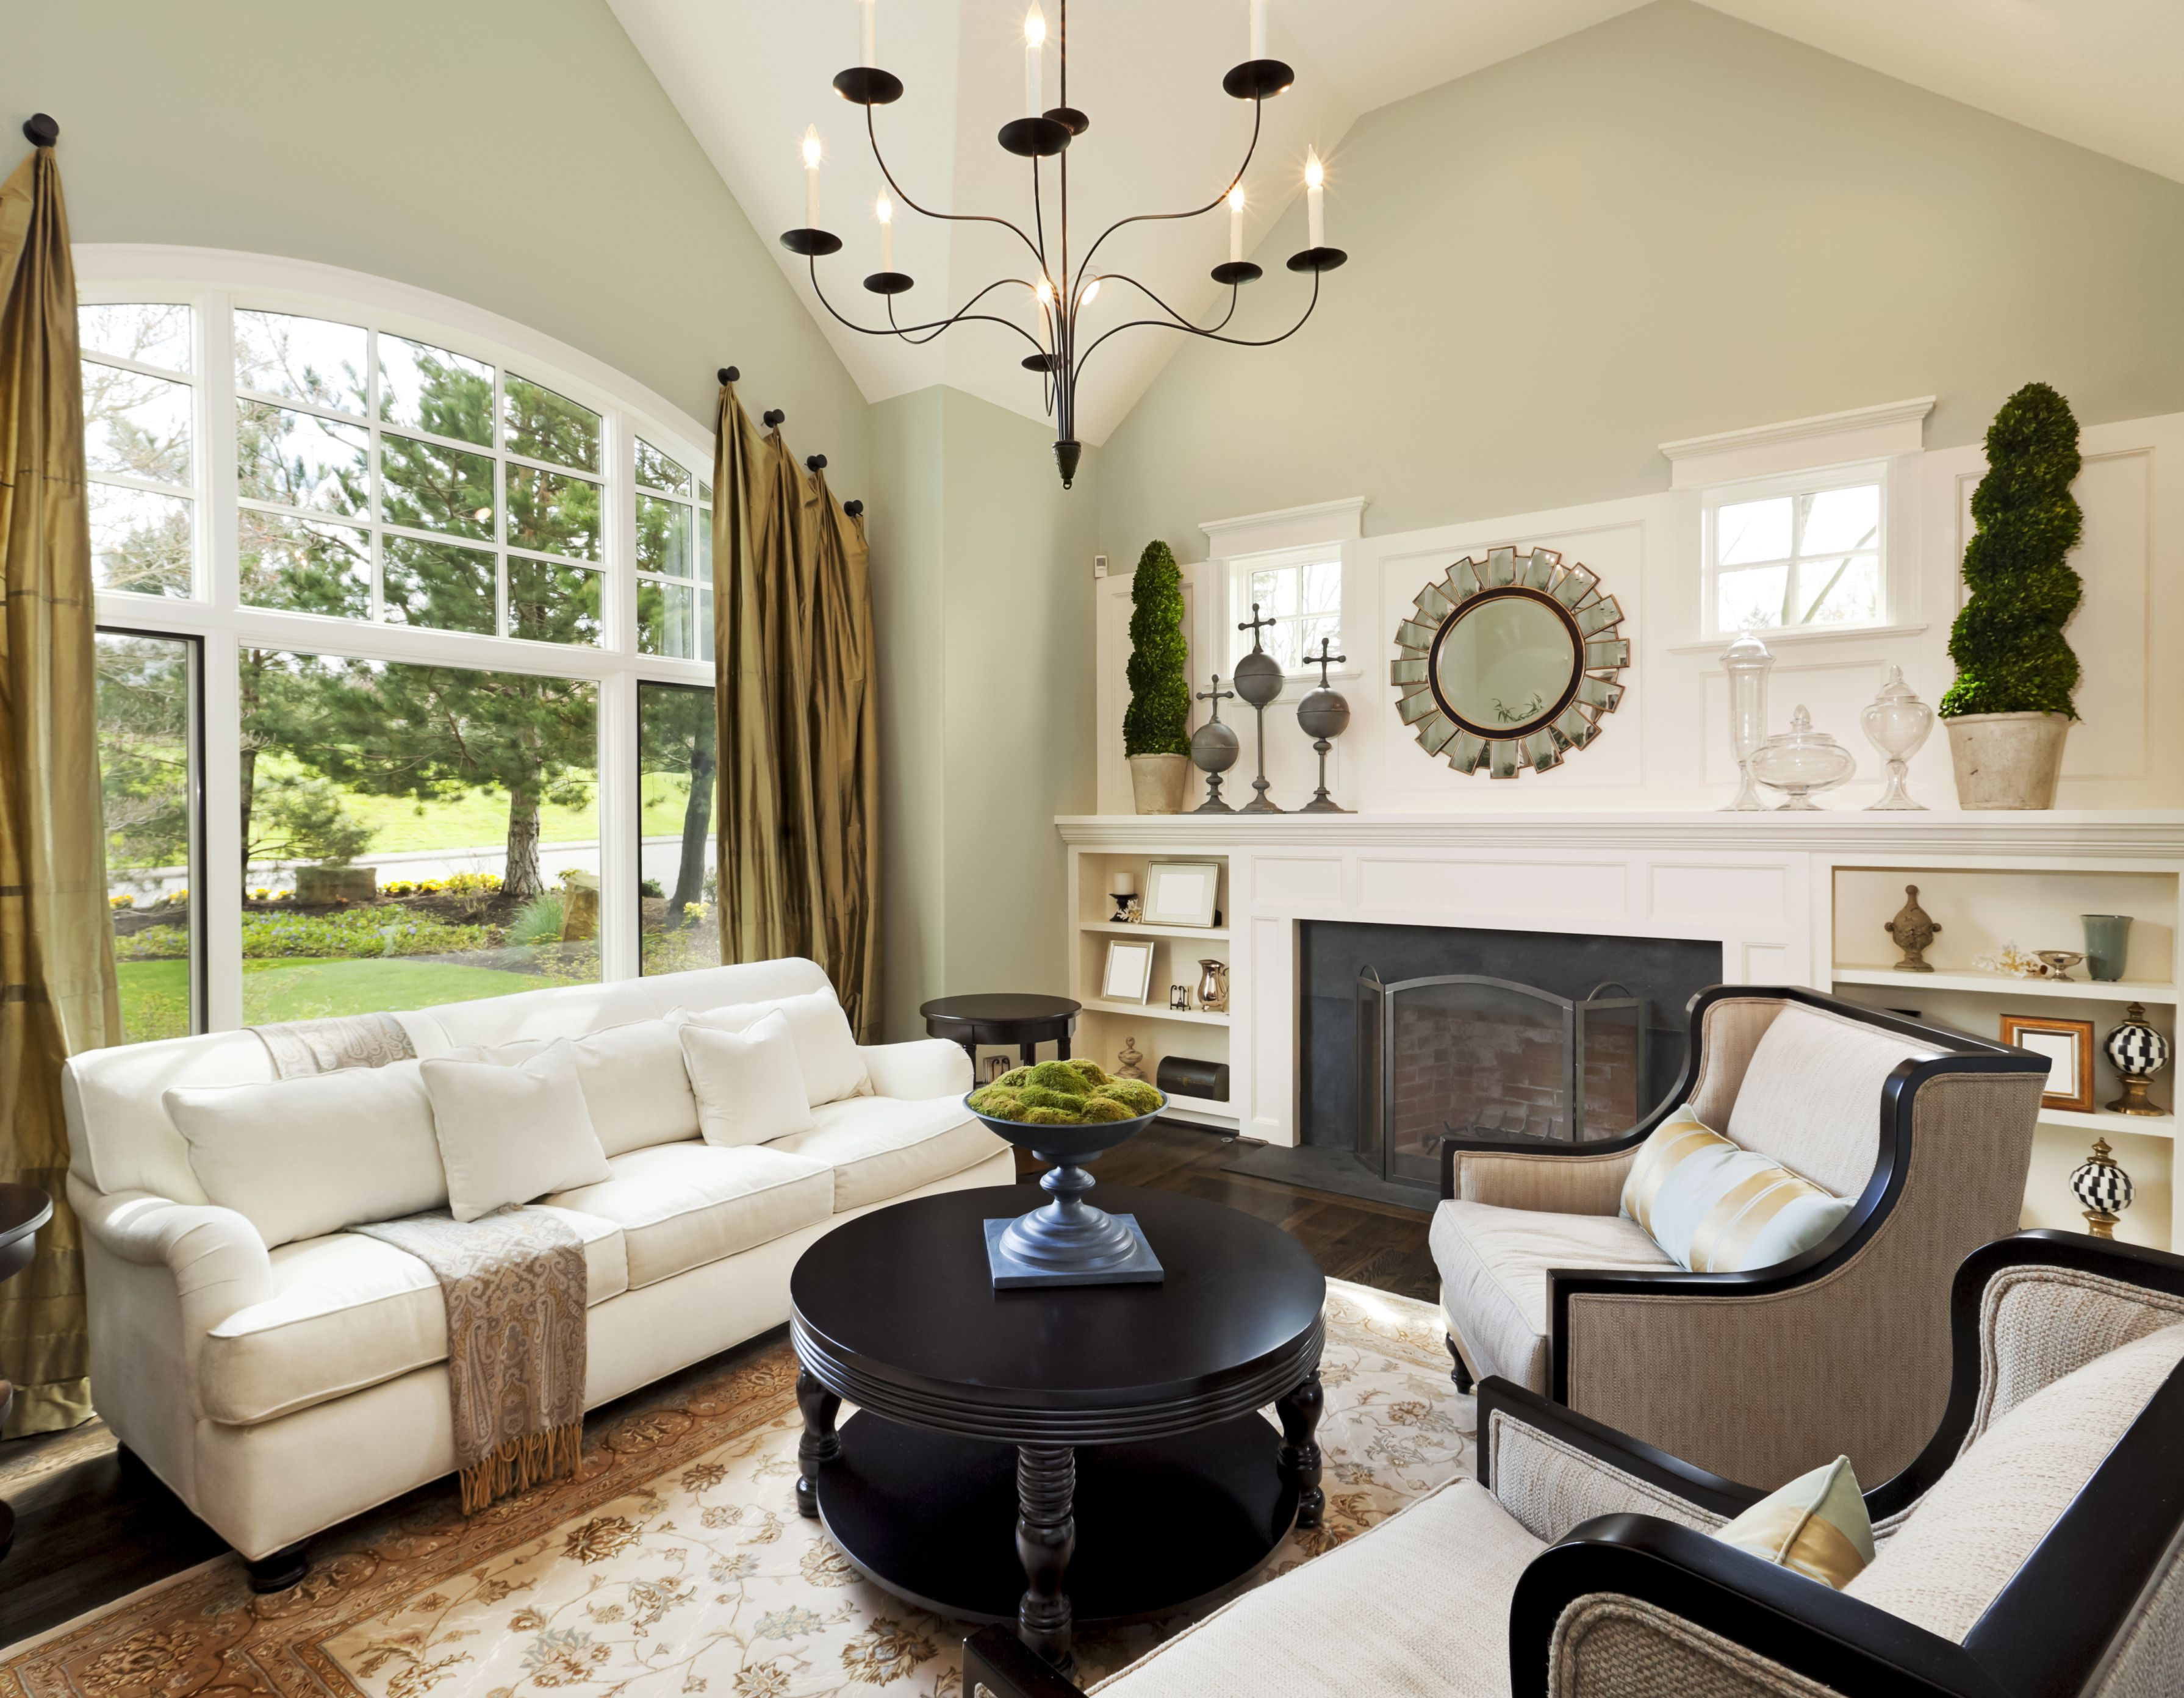 The Beginner's Guide To Decorating Living Rooms